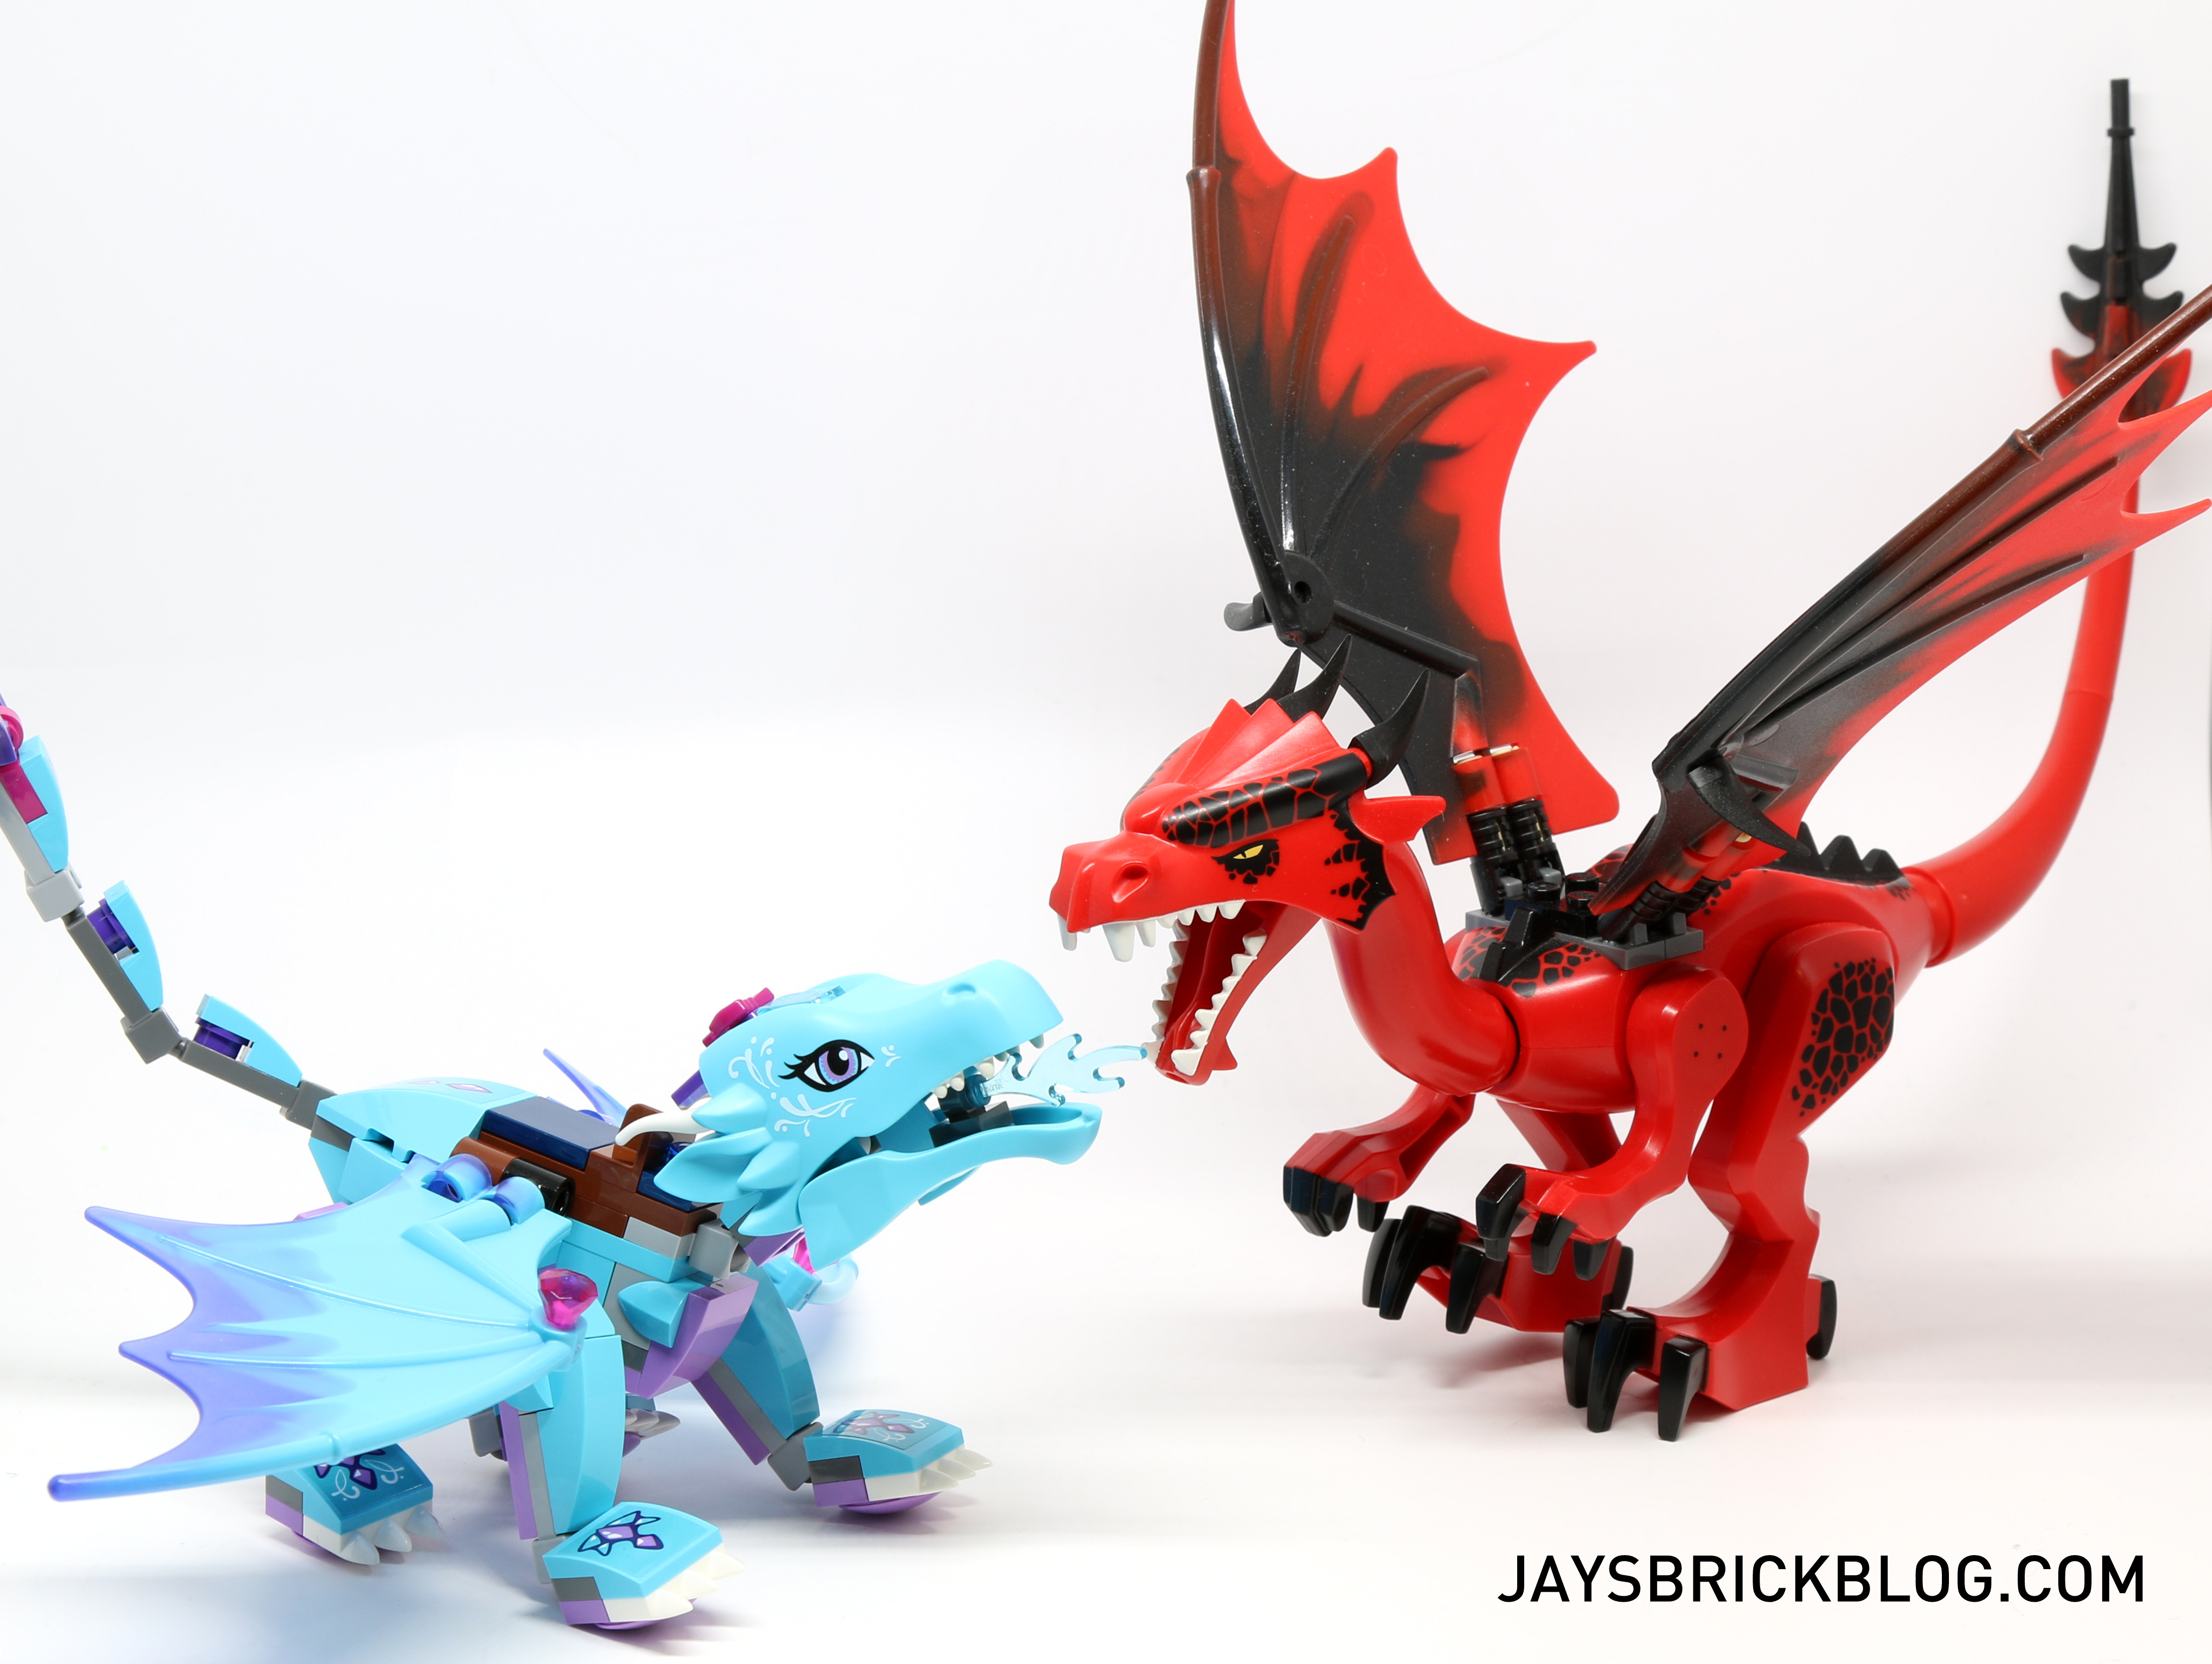 Lego Elves 41172 The Water Dragon Adventure Set Outlet